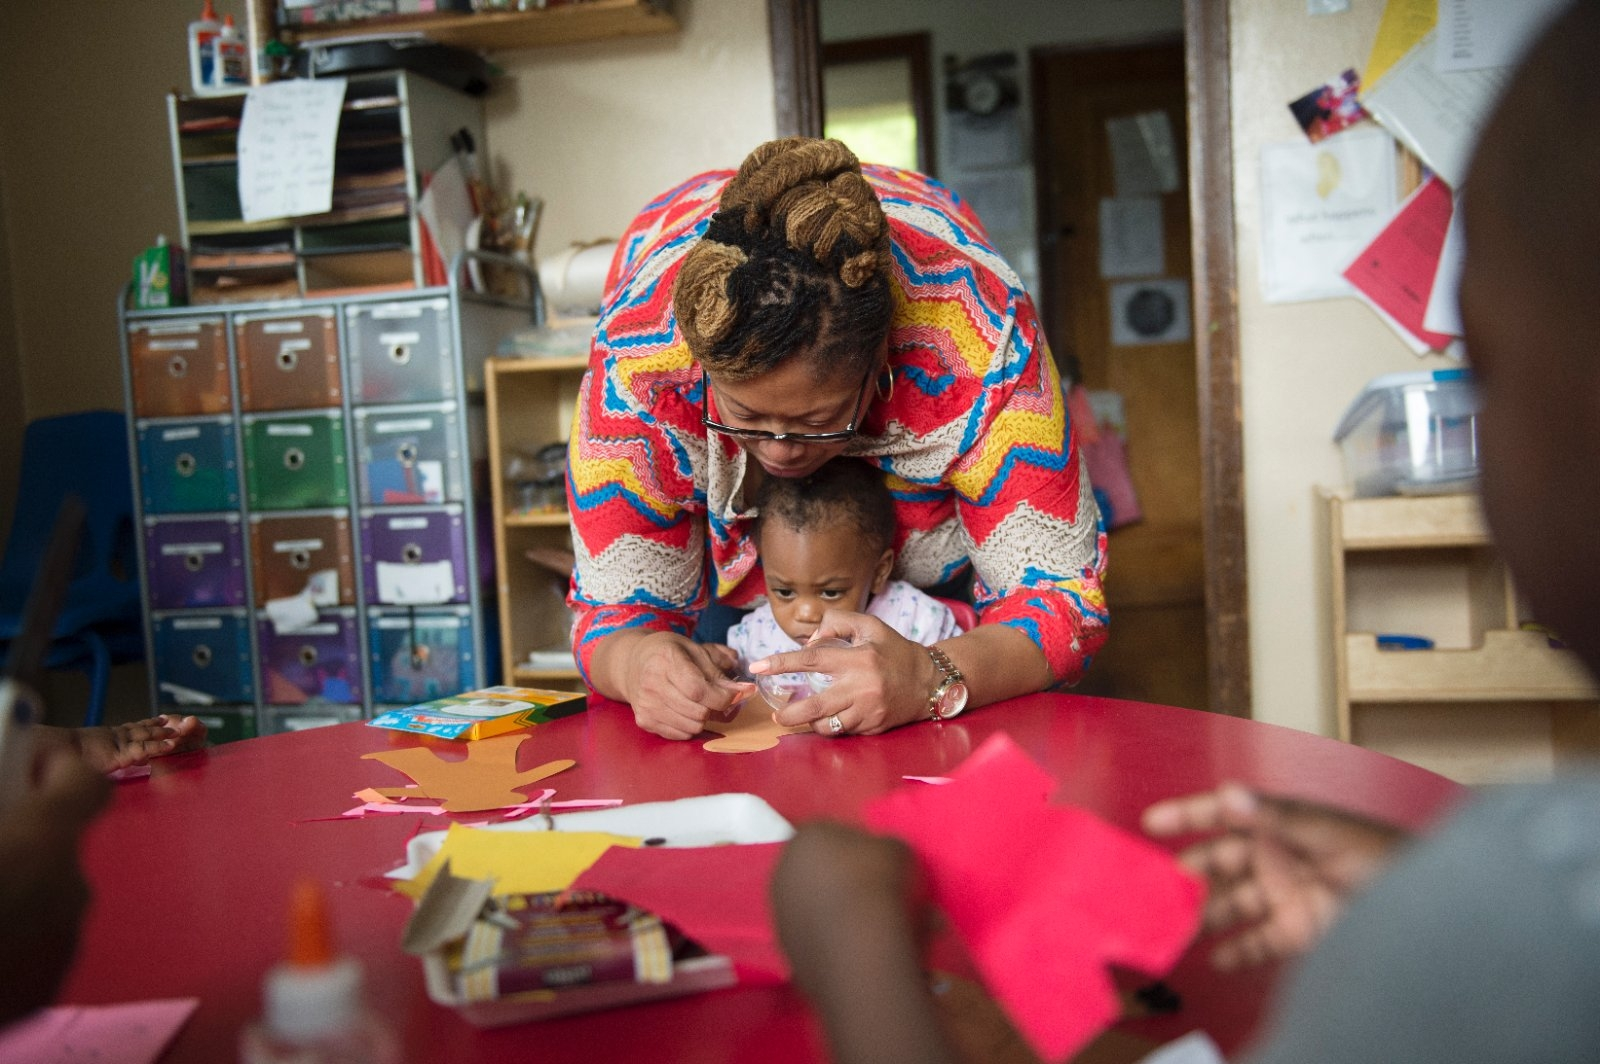 Daycare provider helps a toddler with crafts.